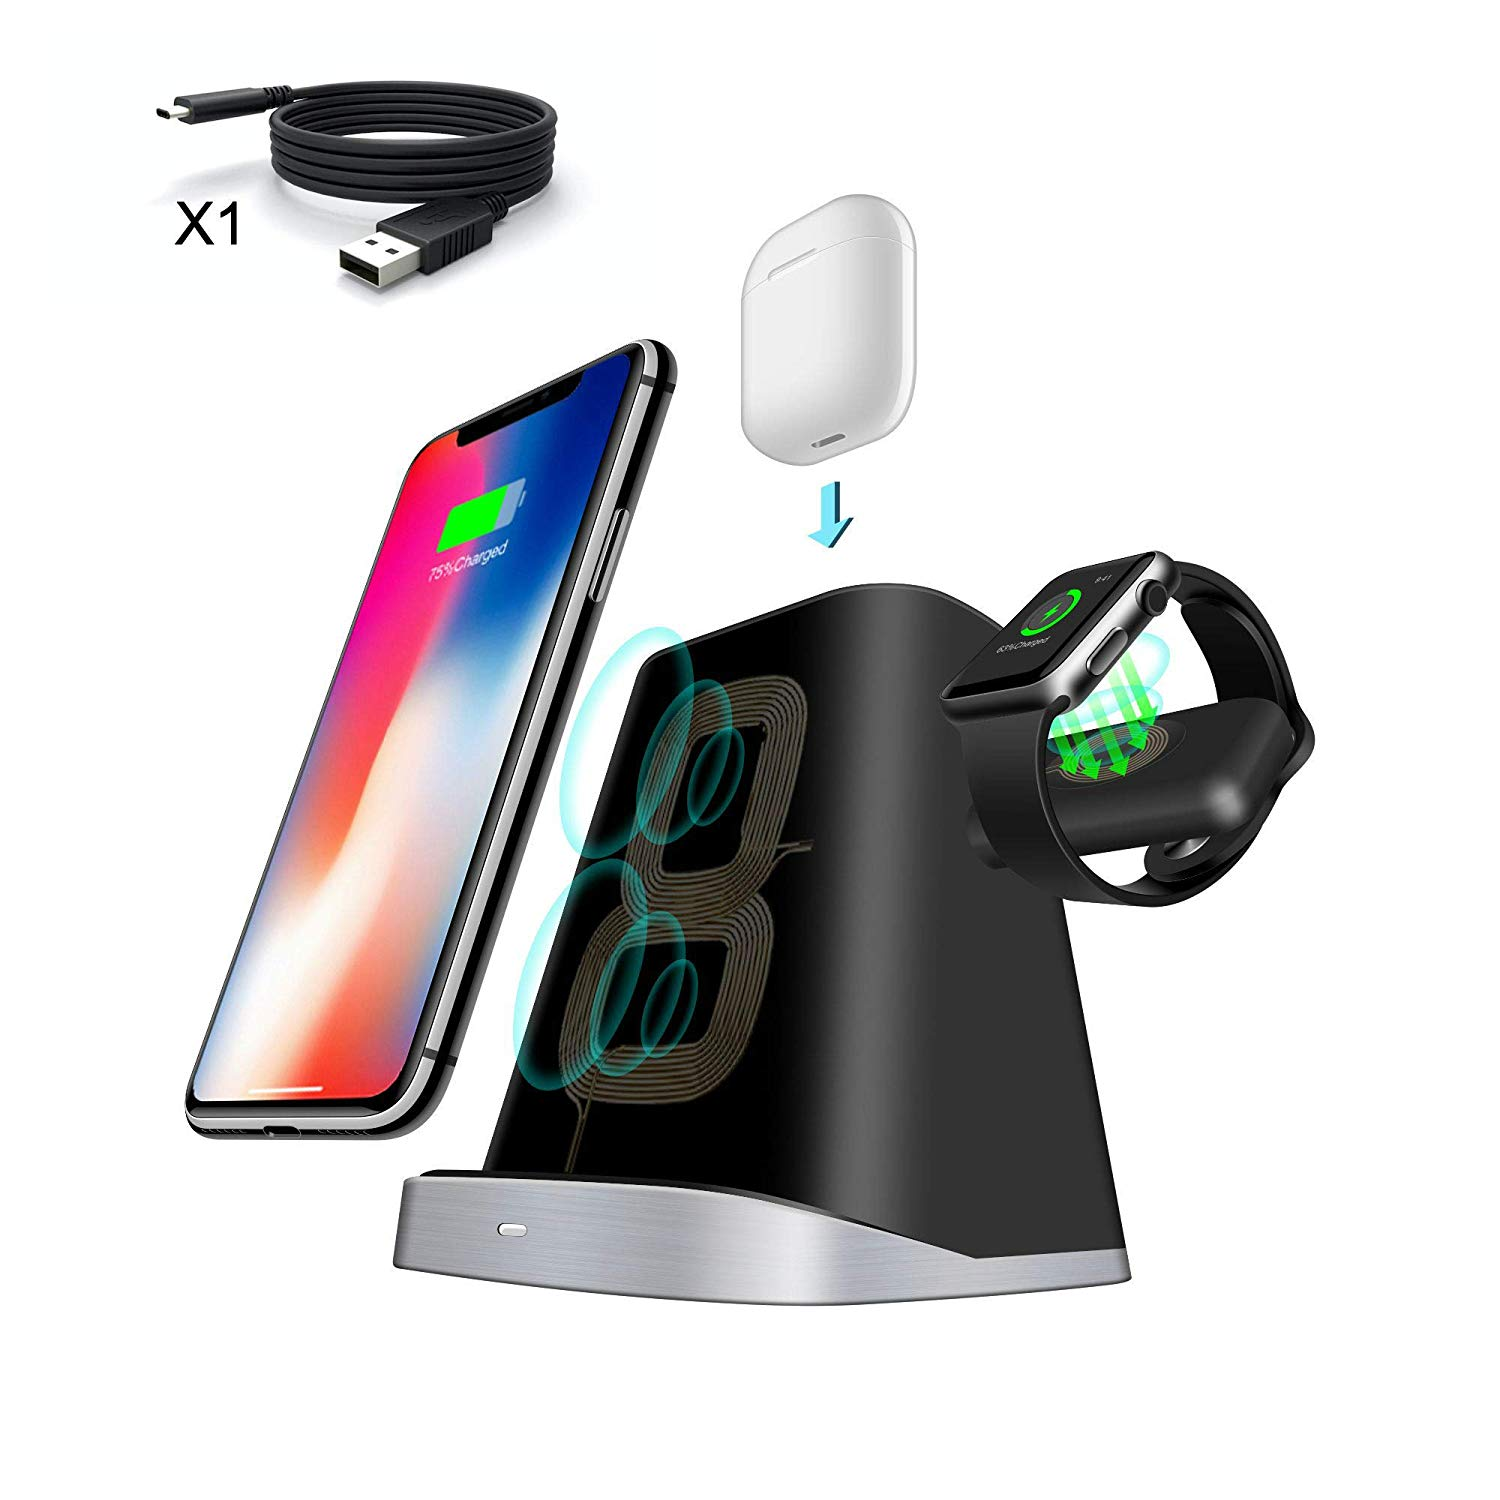 3 in 1 Wireless Charging Station. Adjustable Wireless Charger. Compatible with iPhone, Apple Watch, AirPods Desktop Stand